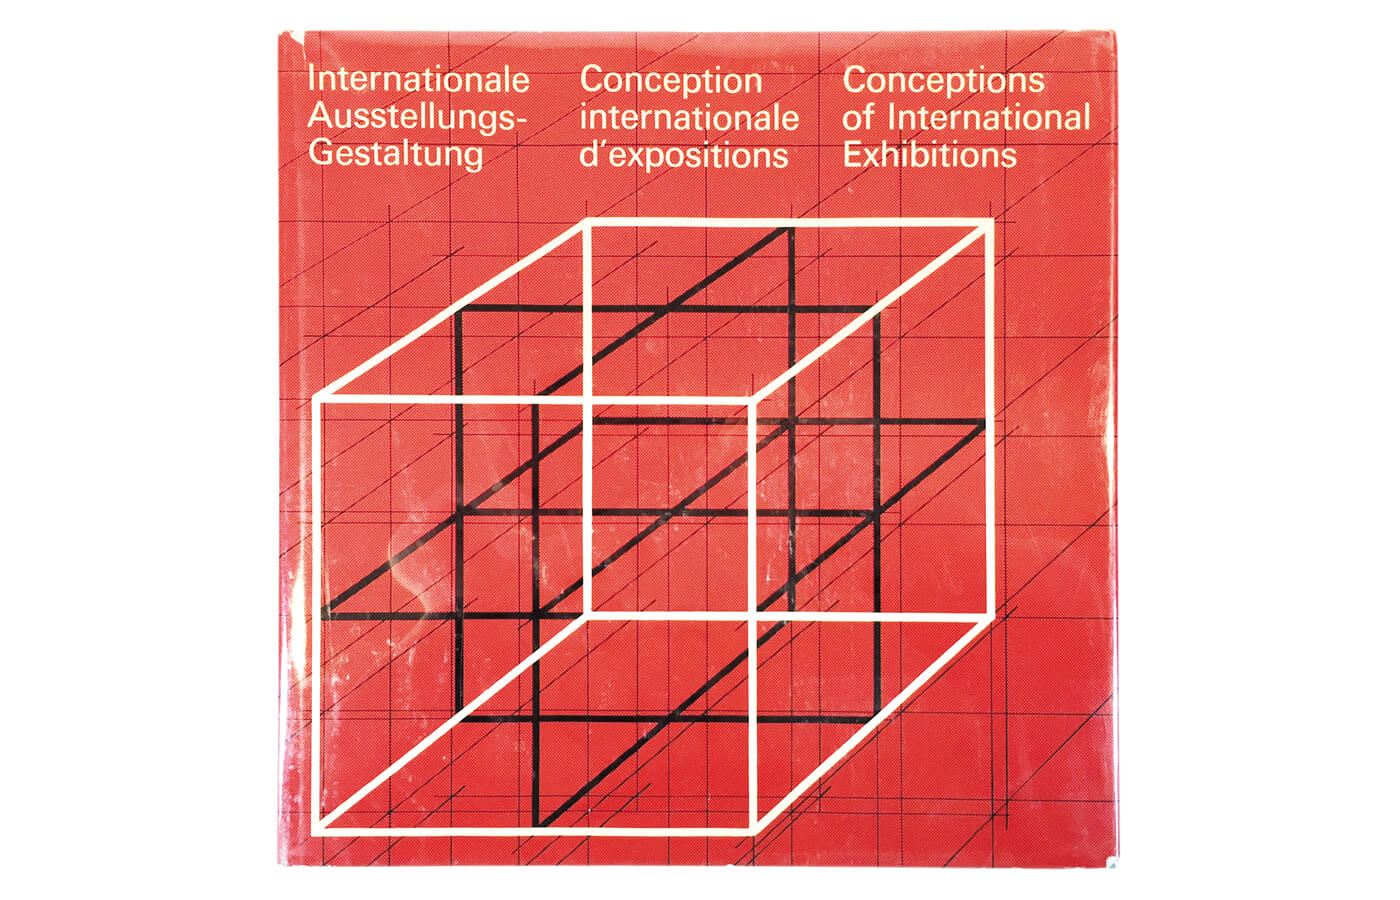 Internationale Ausstellungs-Gestaltung | Conception internationale d'expositions | Conceptions of International Exhibitions